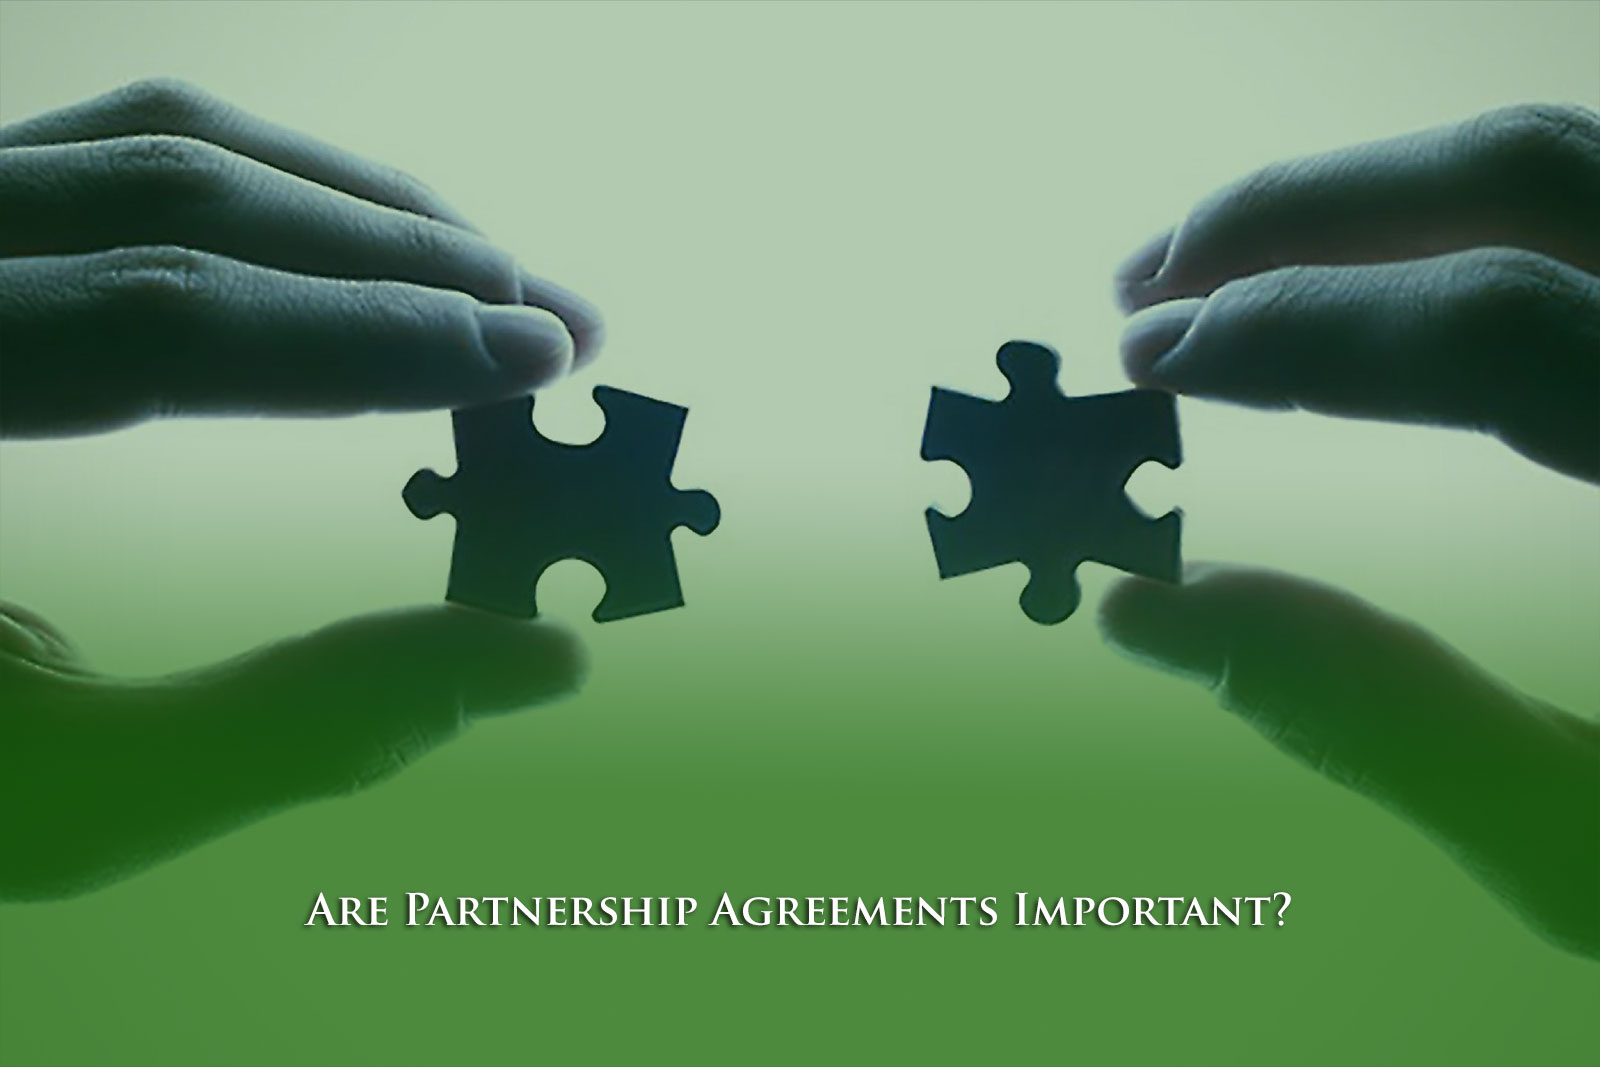 Are Partnership Agreements Important?